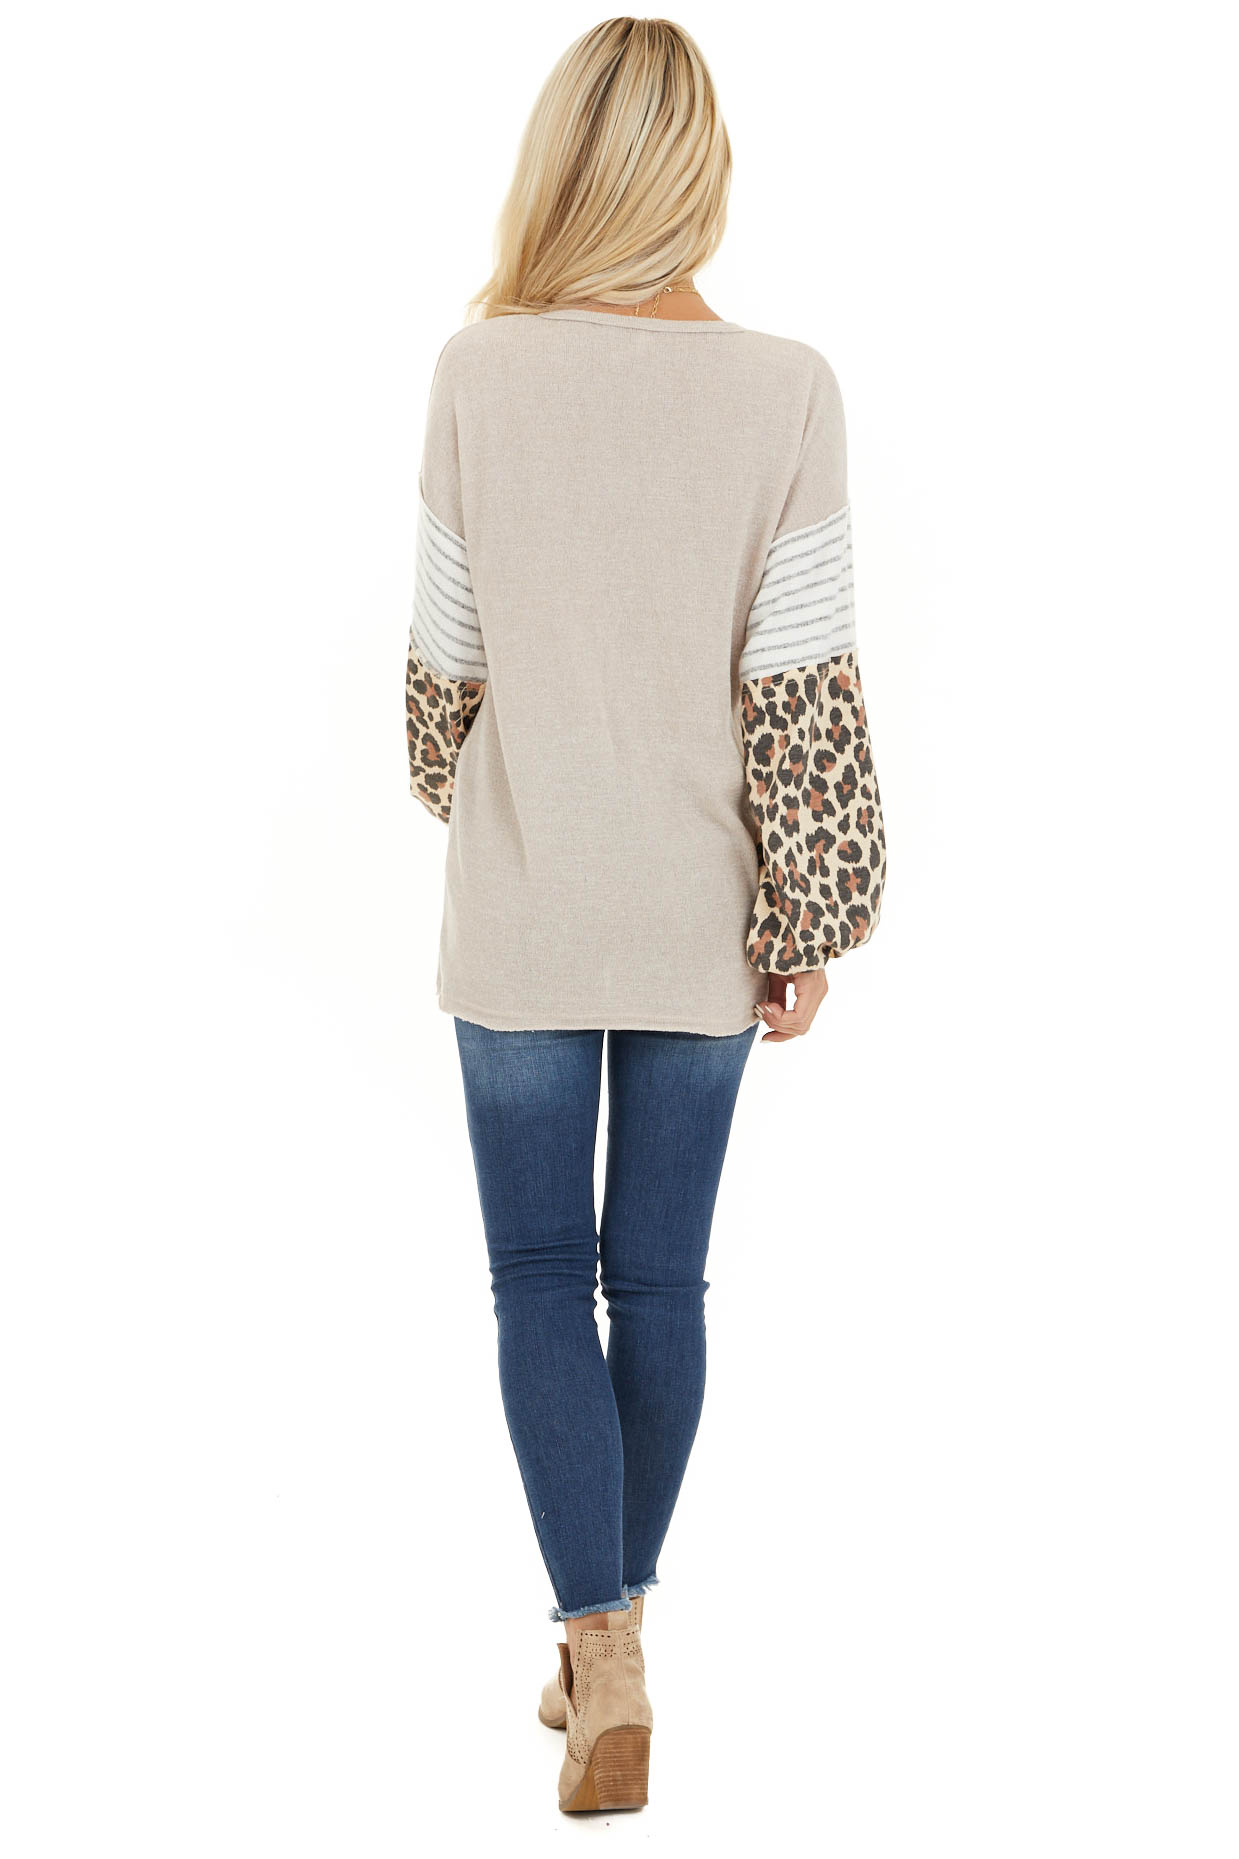 Beige Color Block Top with Leopard Print and Striped Sleeves back full body